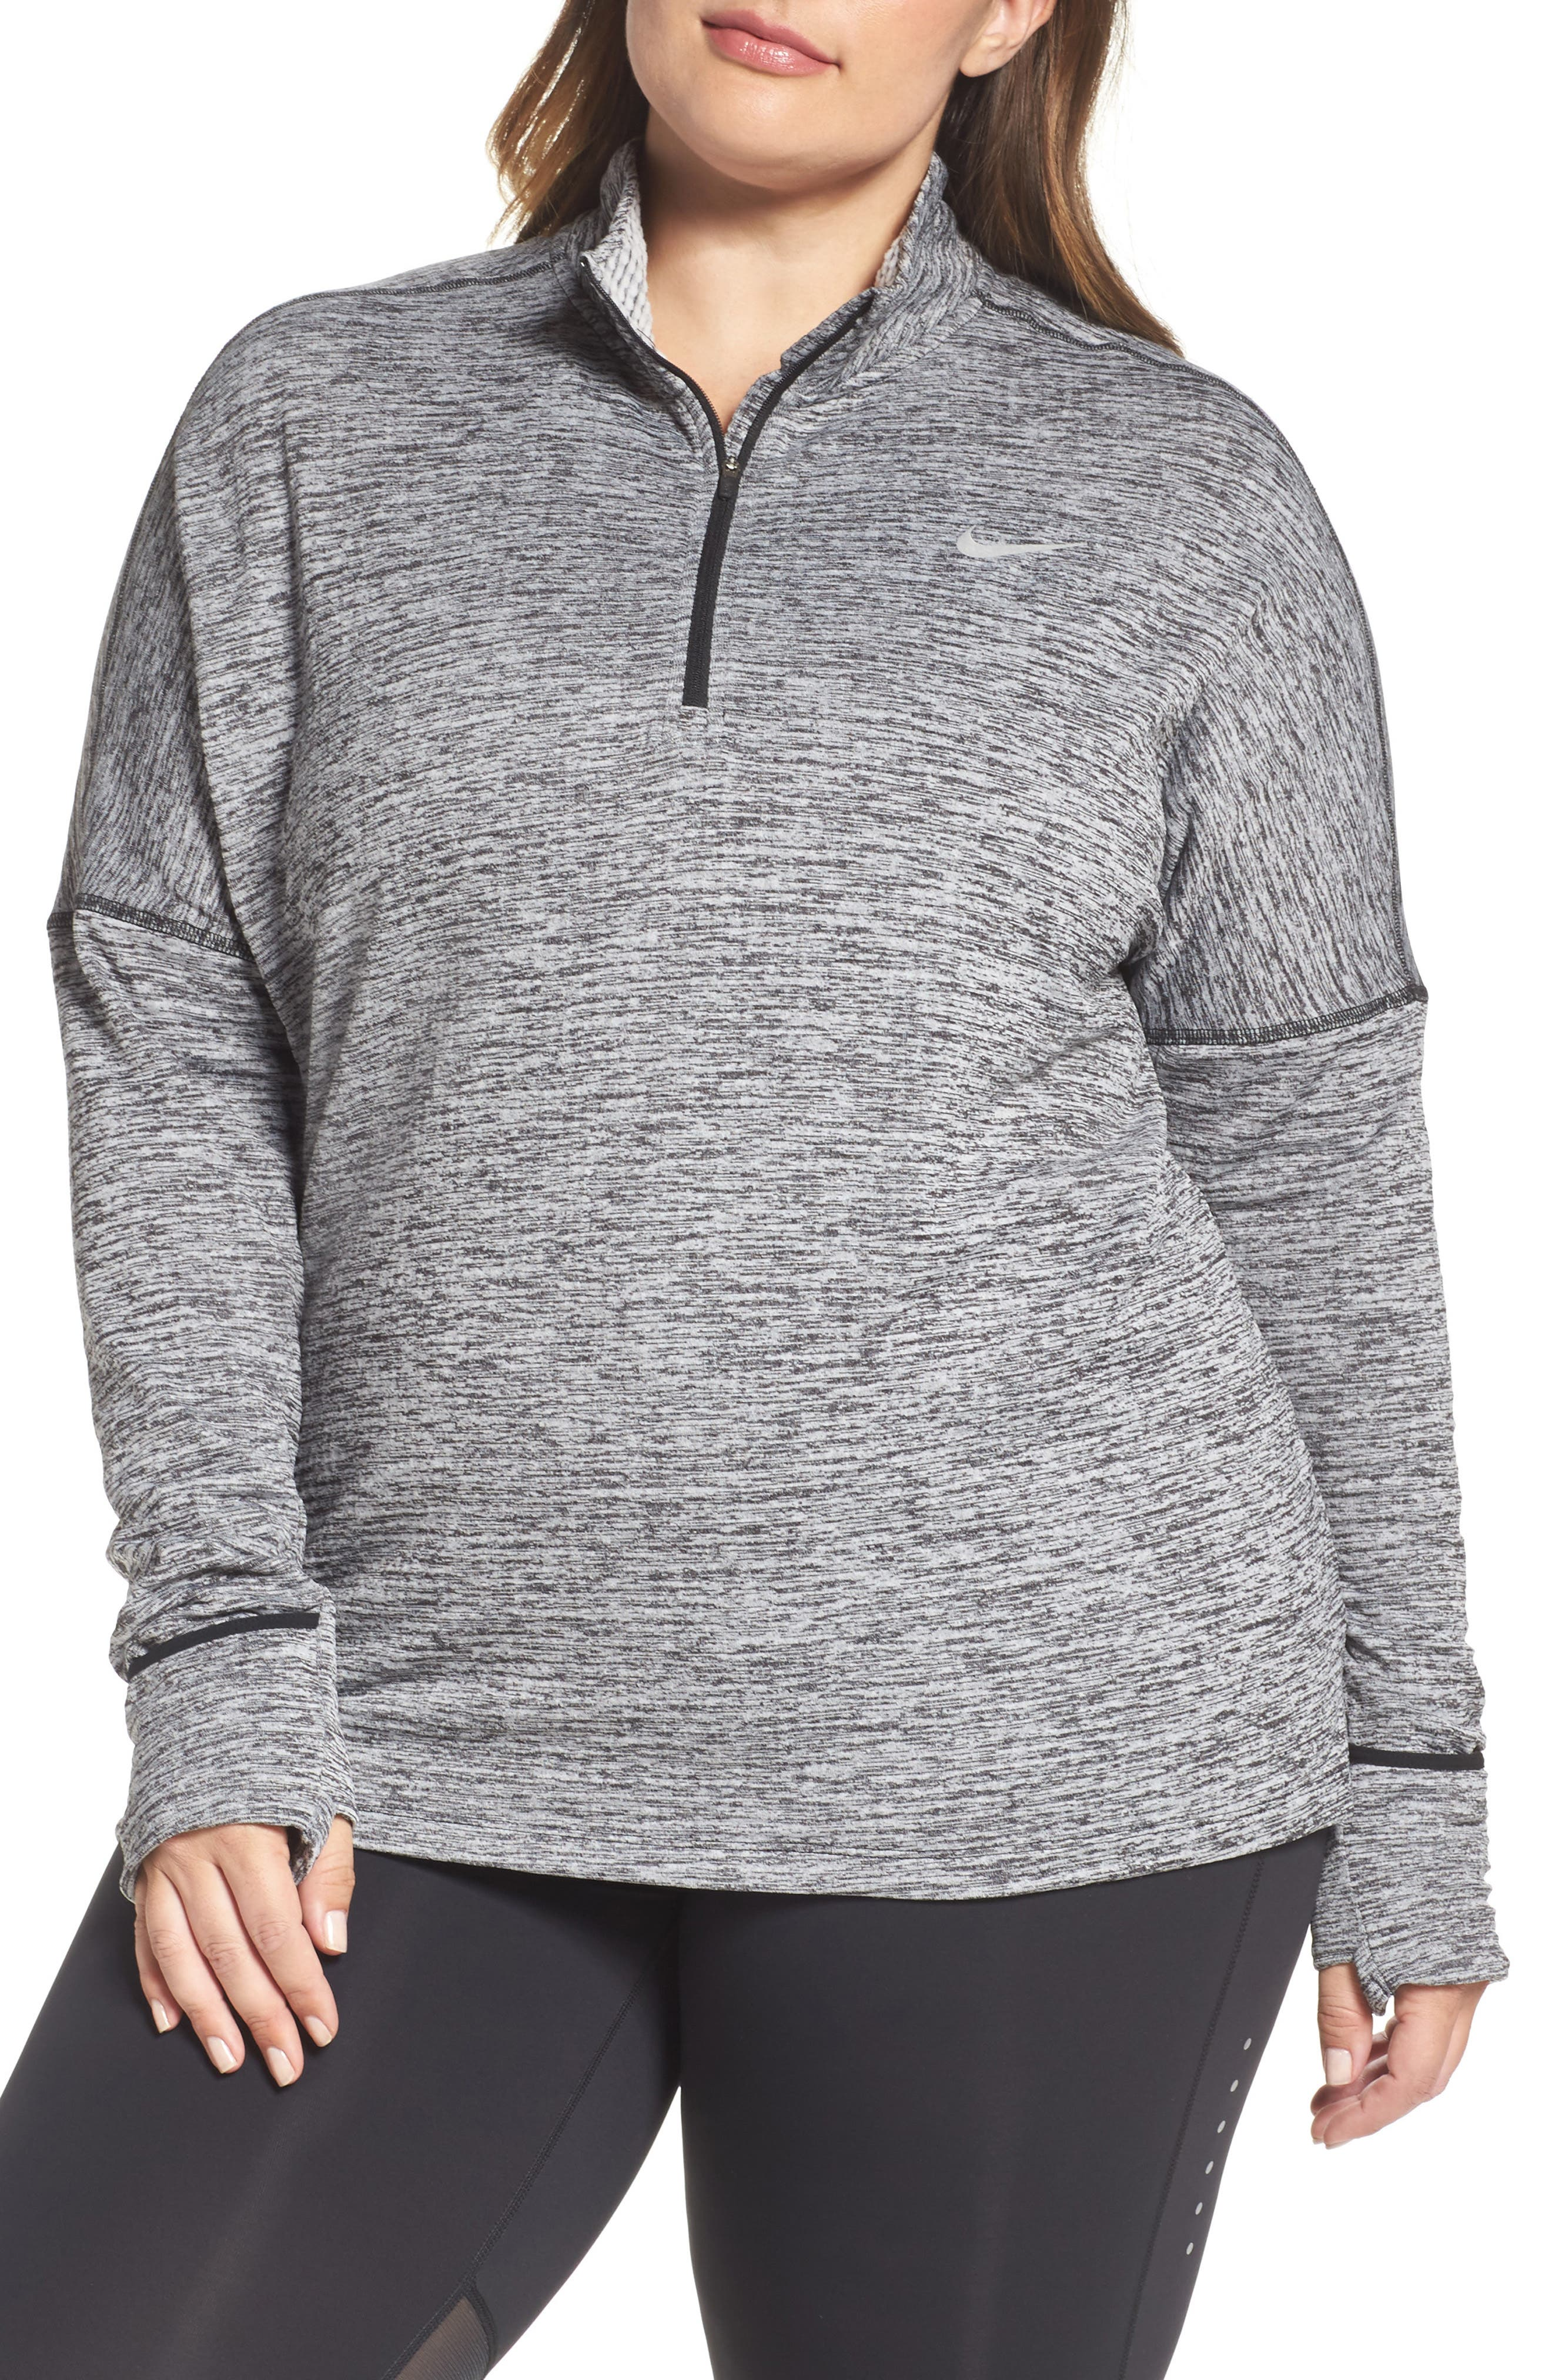 Sphere Element Long Sleeve Running Top,                             Main thumbnail 1, color,